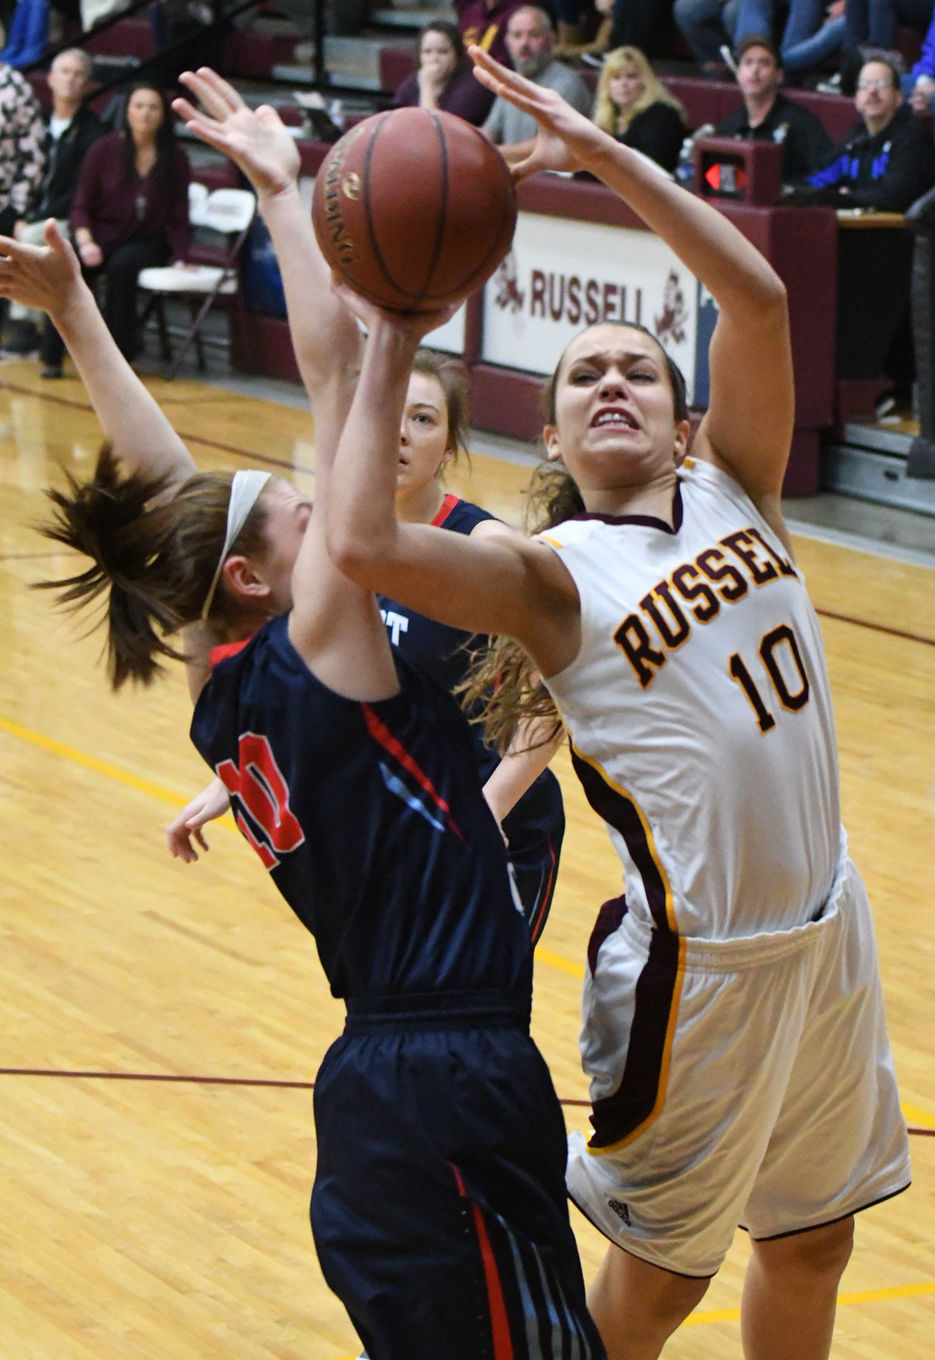 md a smooth operator multi faceted darnell pivotal for russell